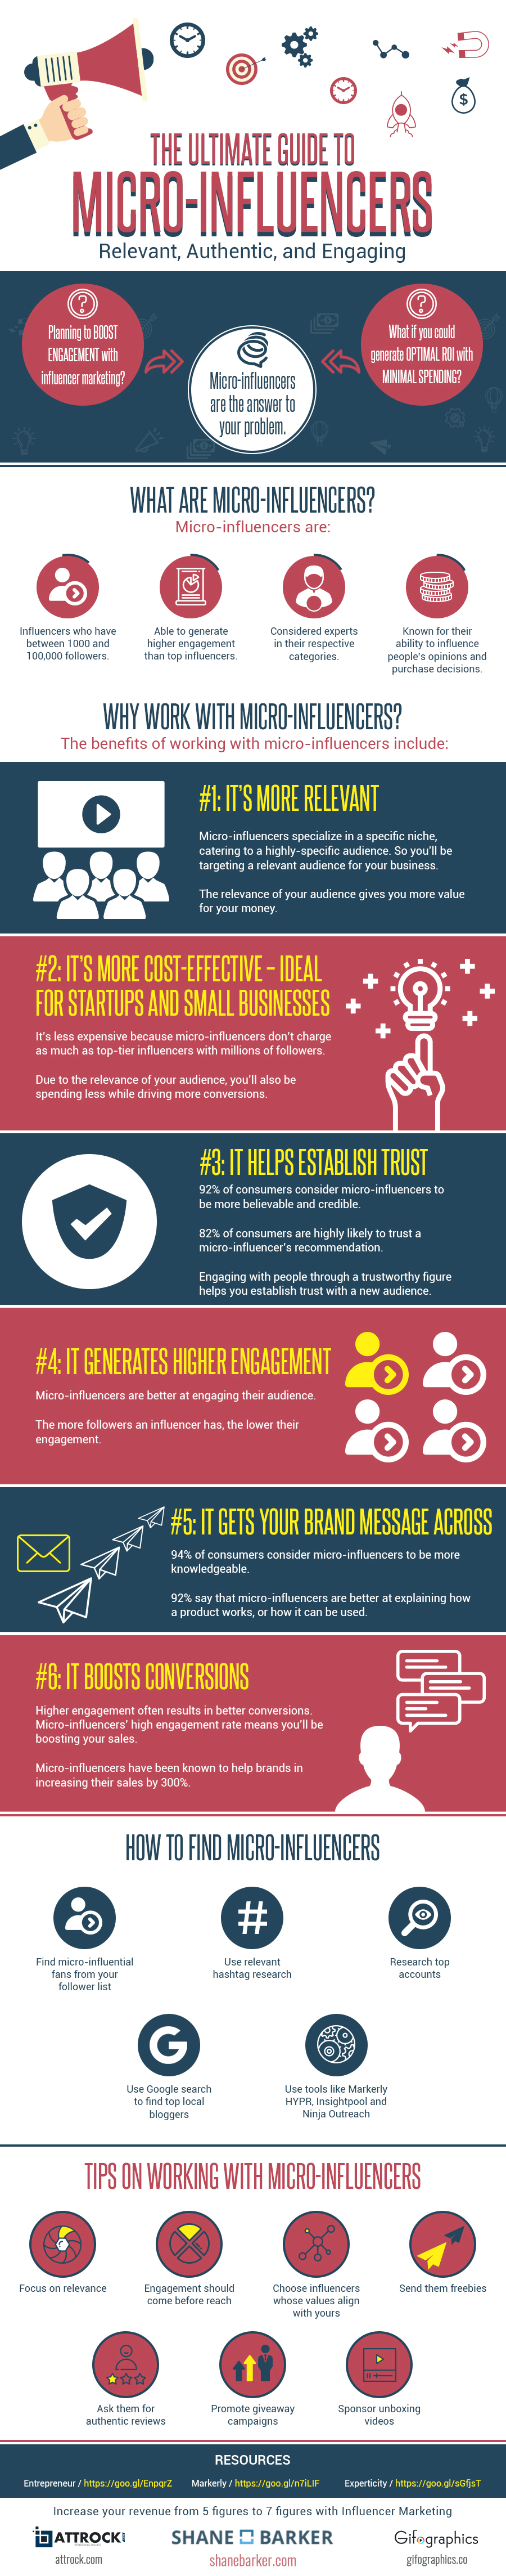 The Ultimate Guide to Micro-Influencers [INFOGRAPHIC]